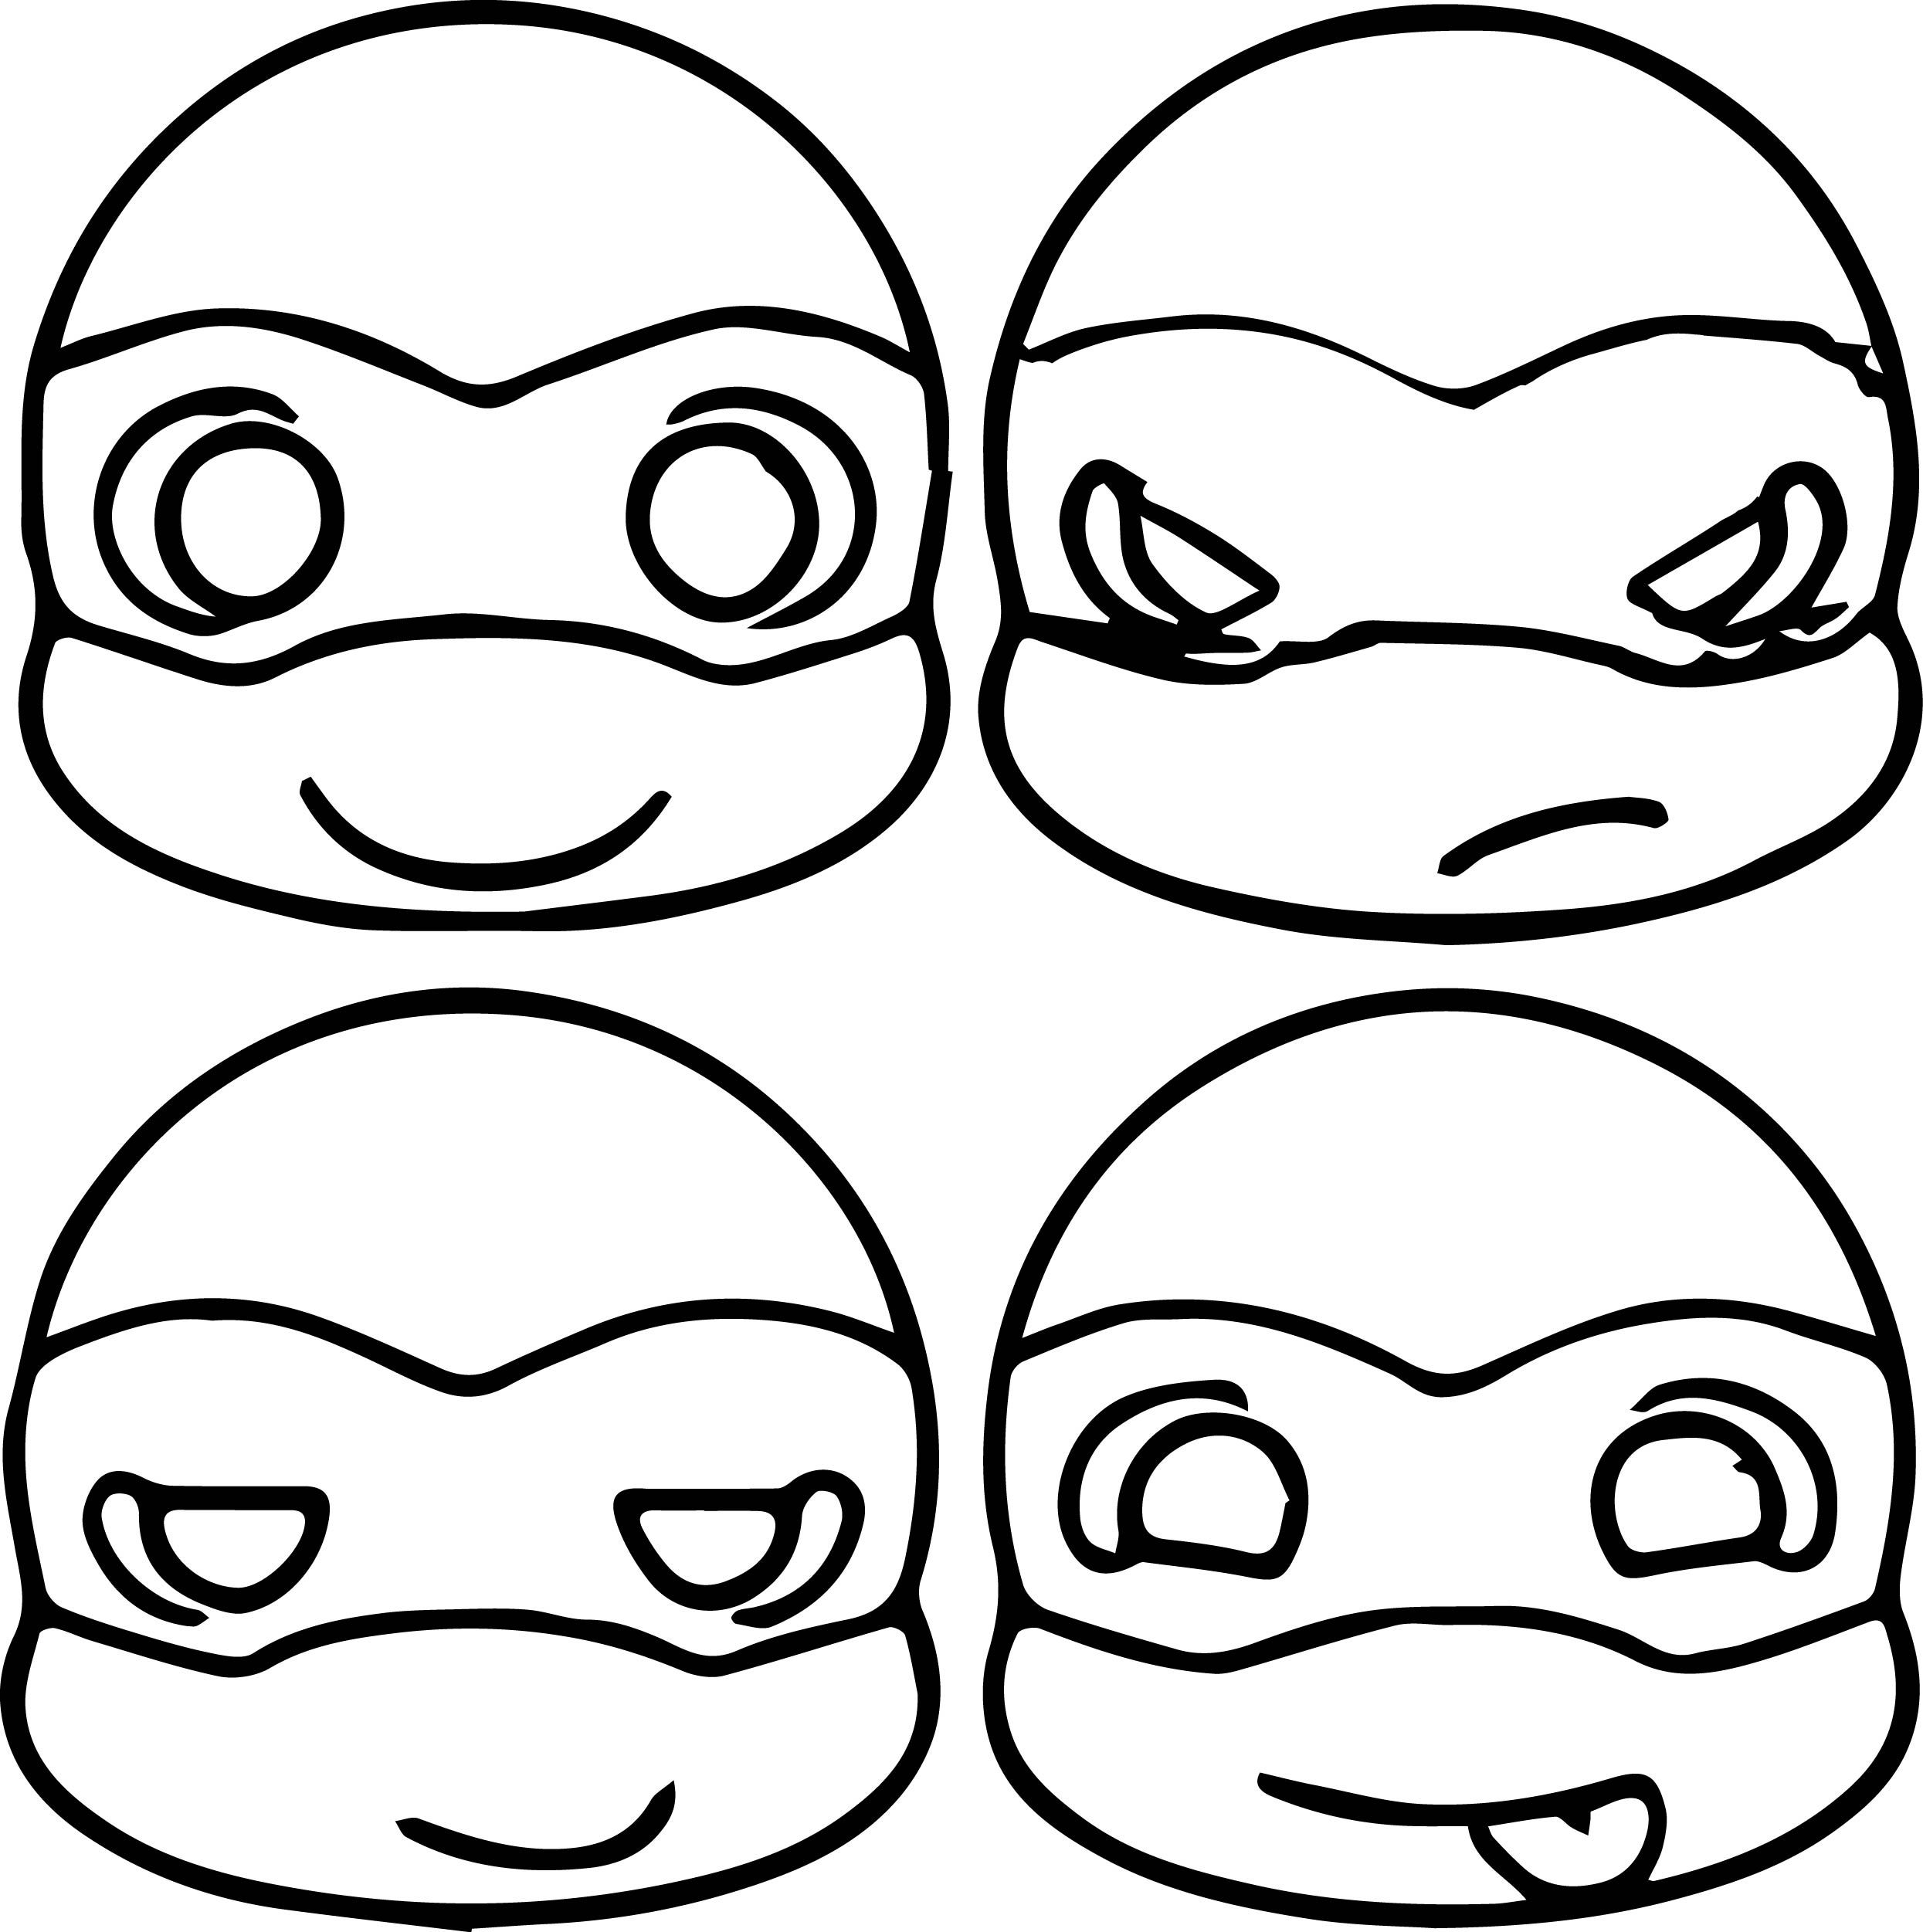 Cute Ninja Turtle Head Coloring Page | Cartoons Variety | Pinterest ...